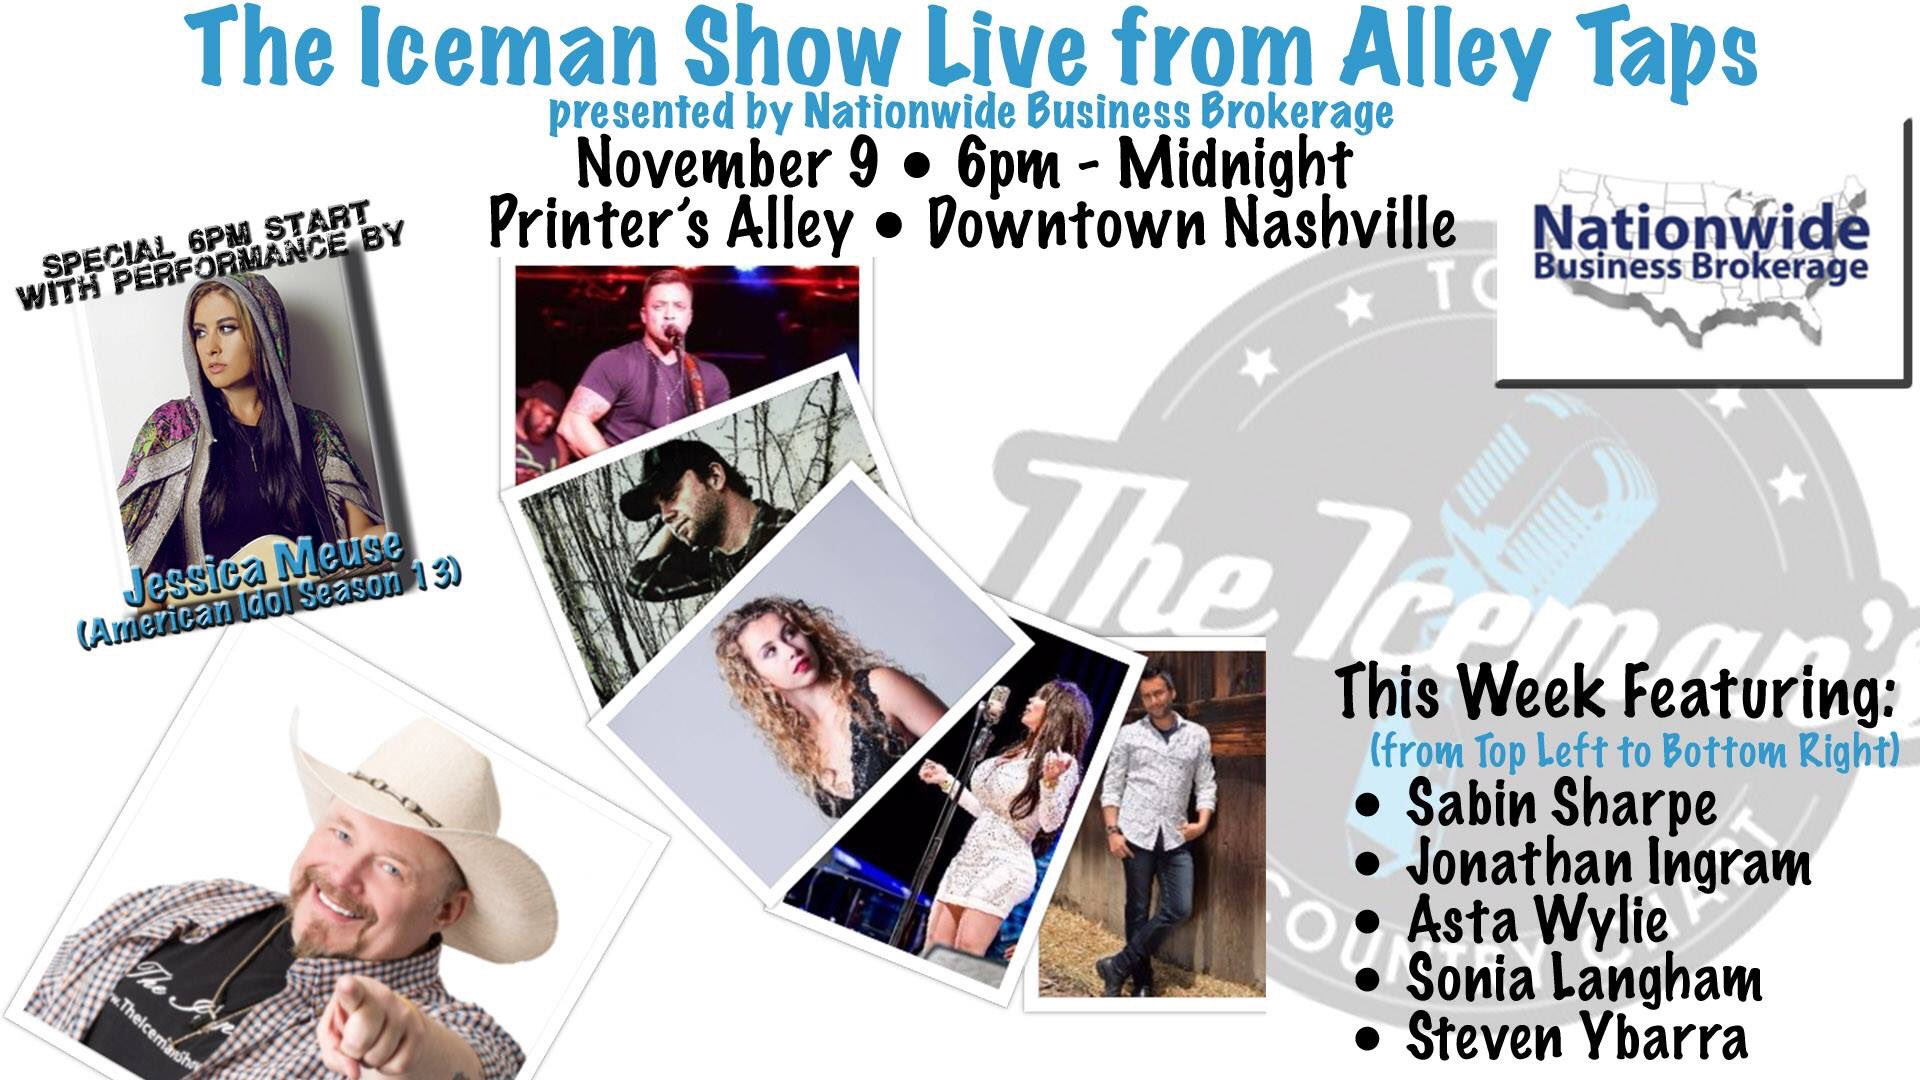 """Alley Taps on Twitter: """"Hey @TheIcemanBCR are you excited for tonight's show? https://t.co/u0sUoftH0M"""""""